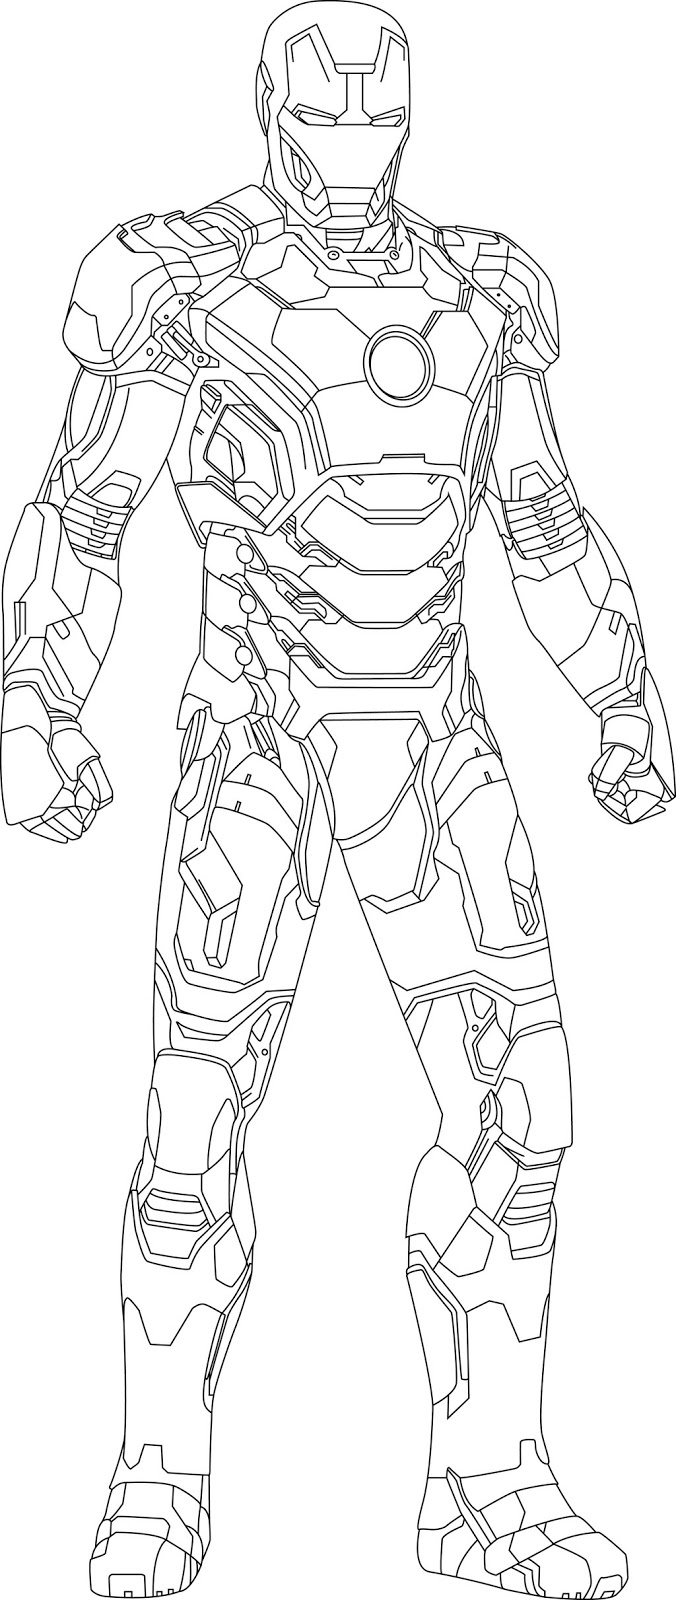 coloring avengers printables the avengers coloring pages to download and print for free printables coloring avengers